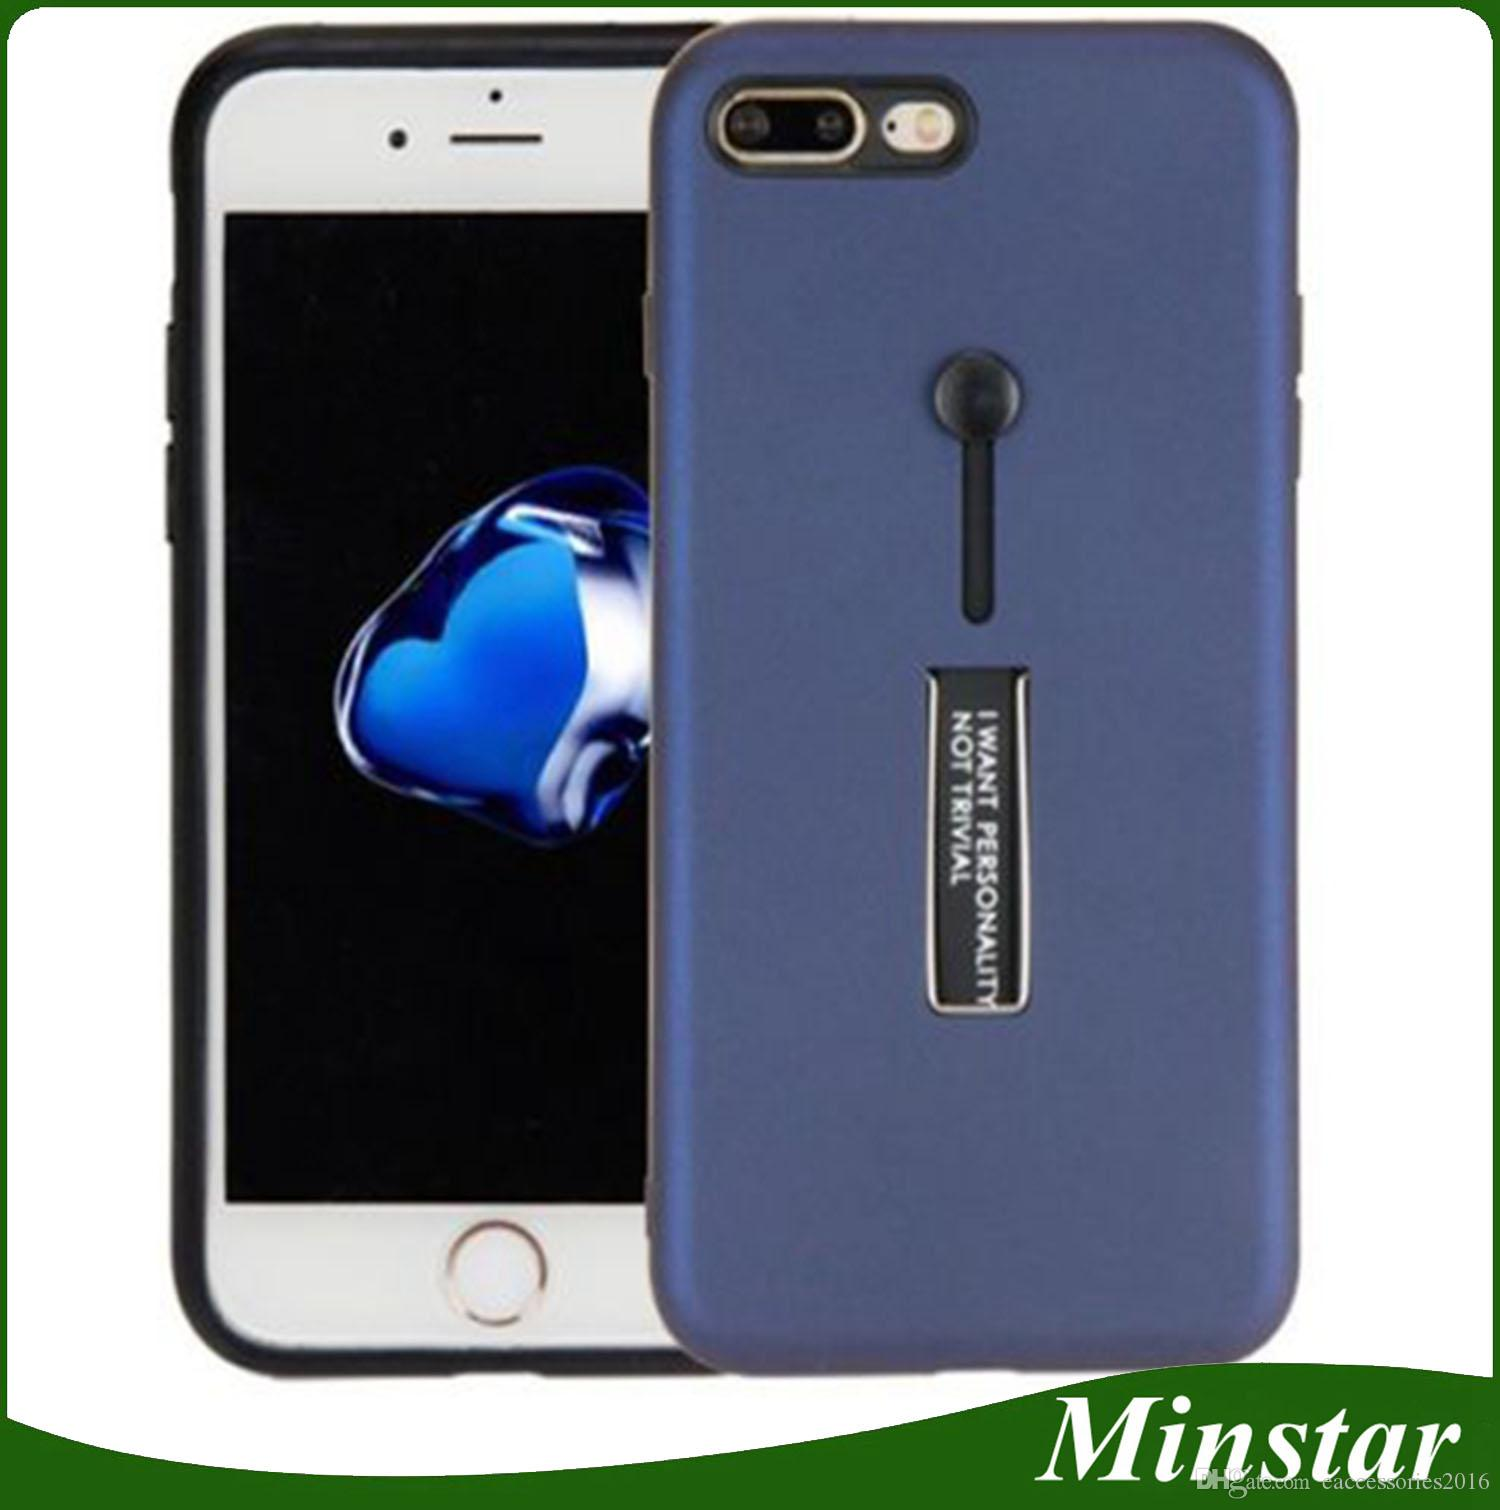 For Alcate A30 A30 Plus Mobile Phone Case Soft Rubber Ring Cover Samsung A5 A7 2017 Version J7 Max J7 Plus Hybrid Case Top Rated Cell Phones Leather Phone